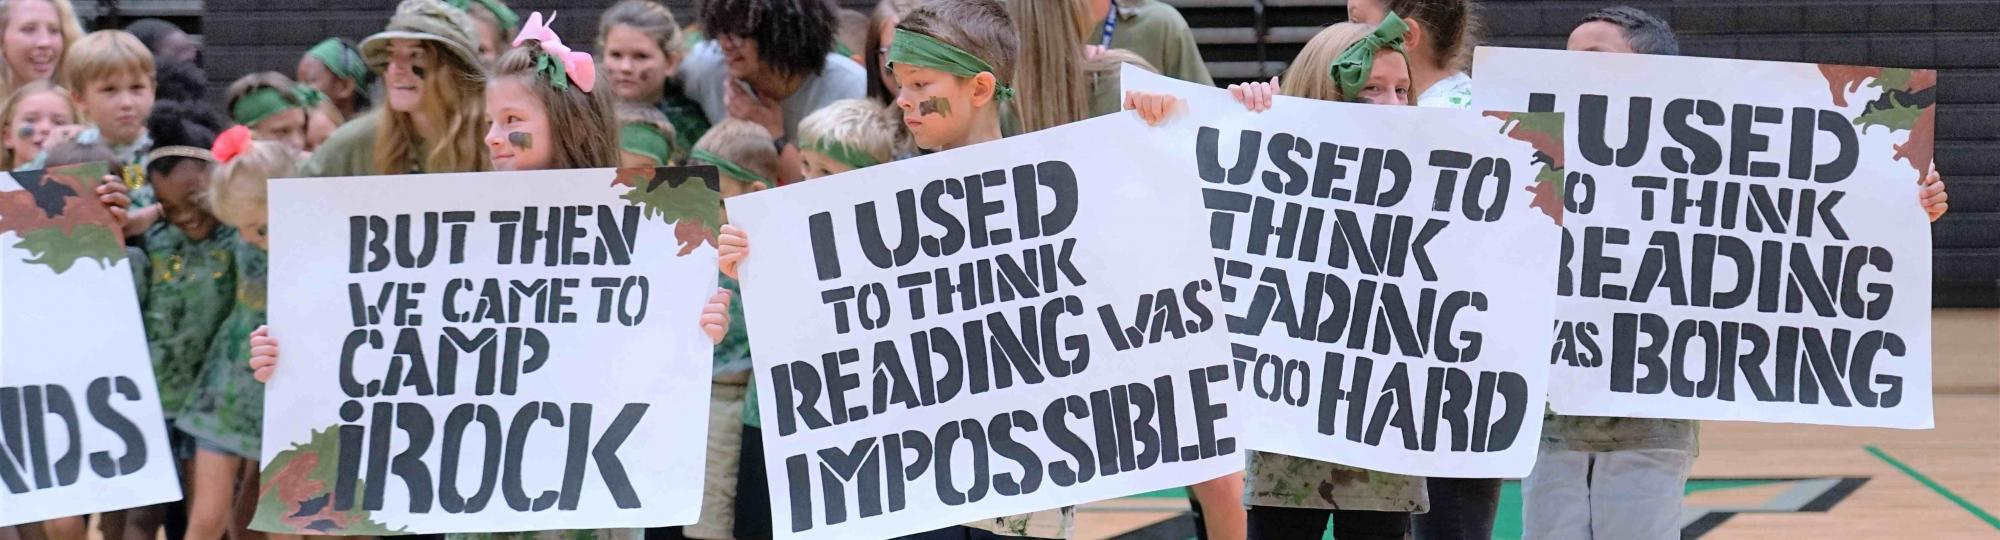 camp irock campers hold signs which say i used to think reading was impossible but then i came to camp irock